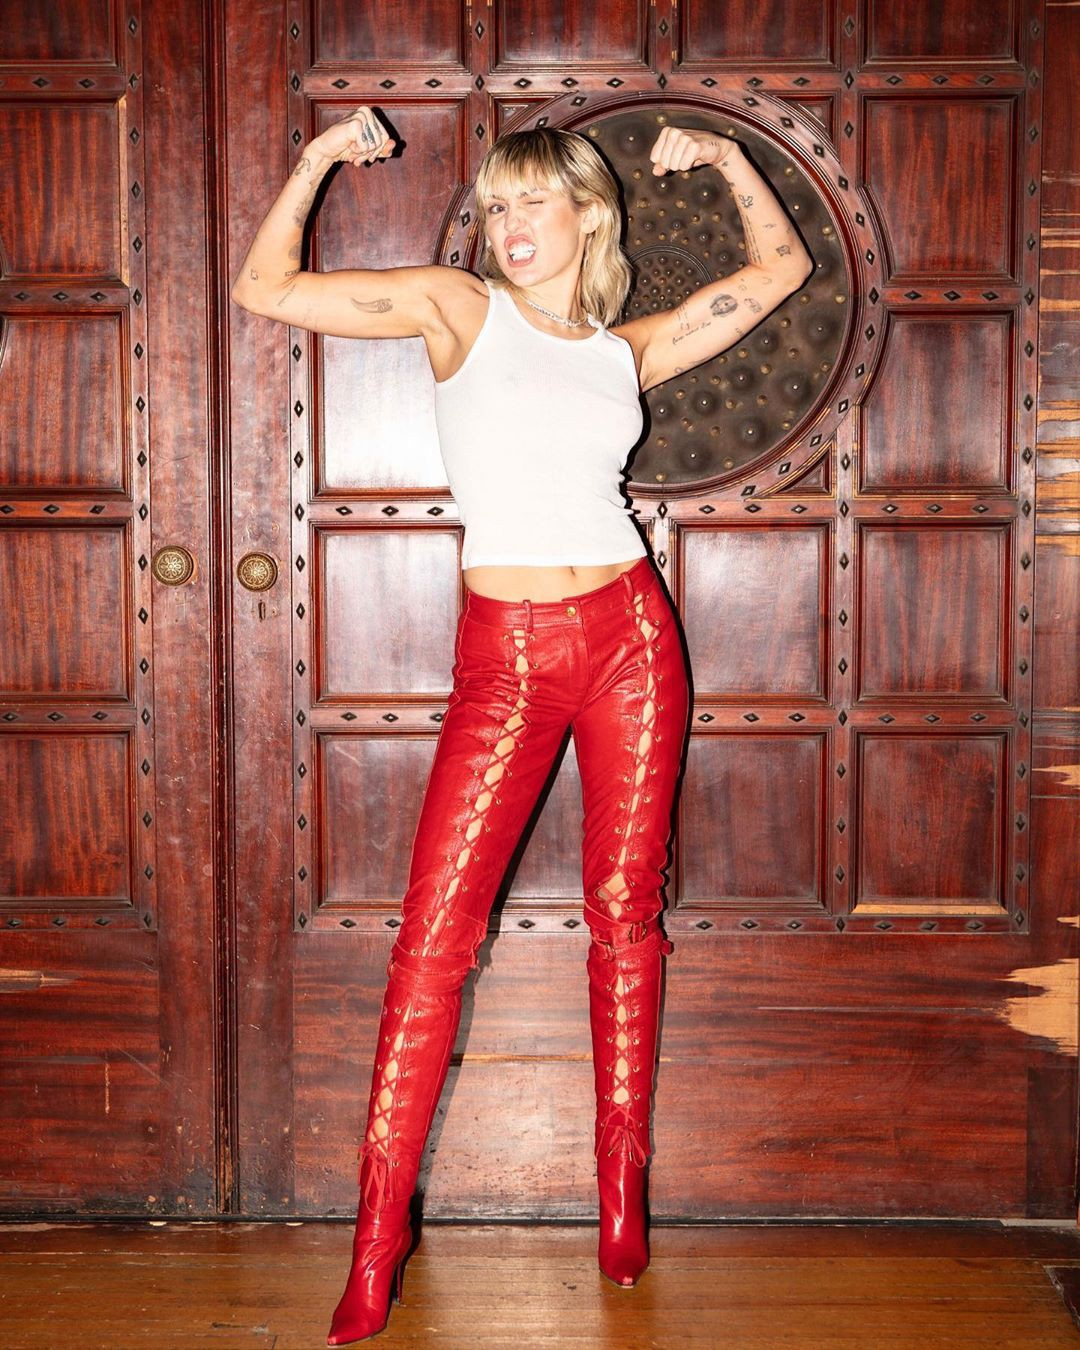 mileycyrus trousers, leggings, jeans matching outfit